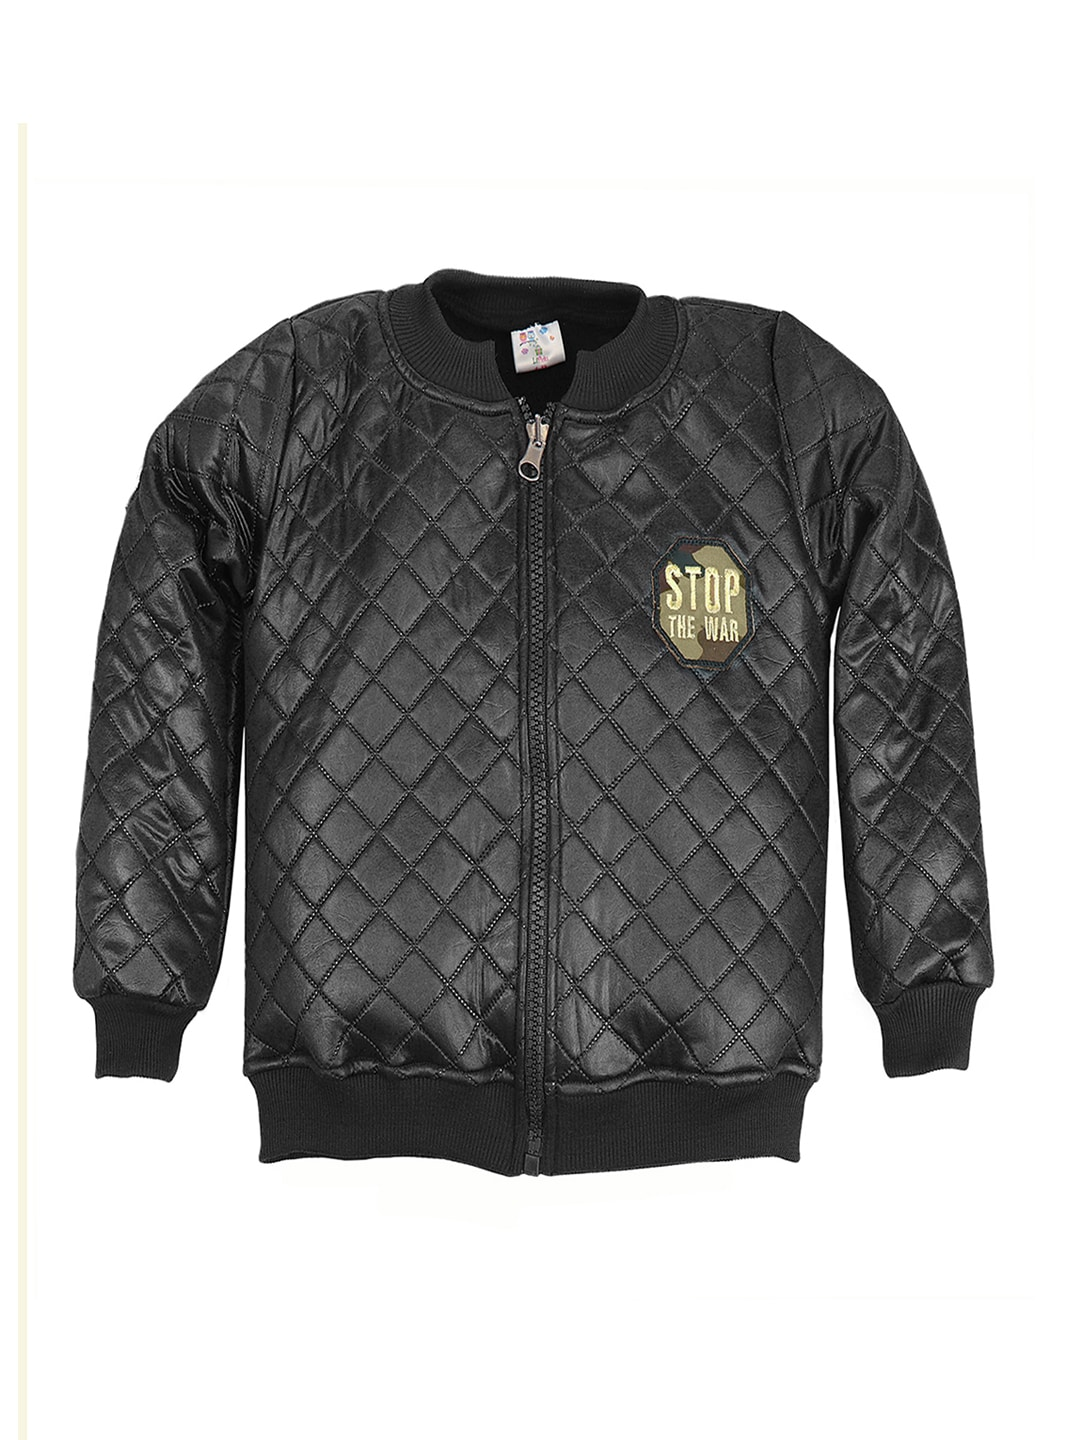 2175b25d8 Boys Jackets- Buy Jackets for Boys online in India